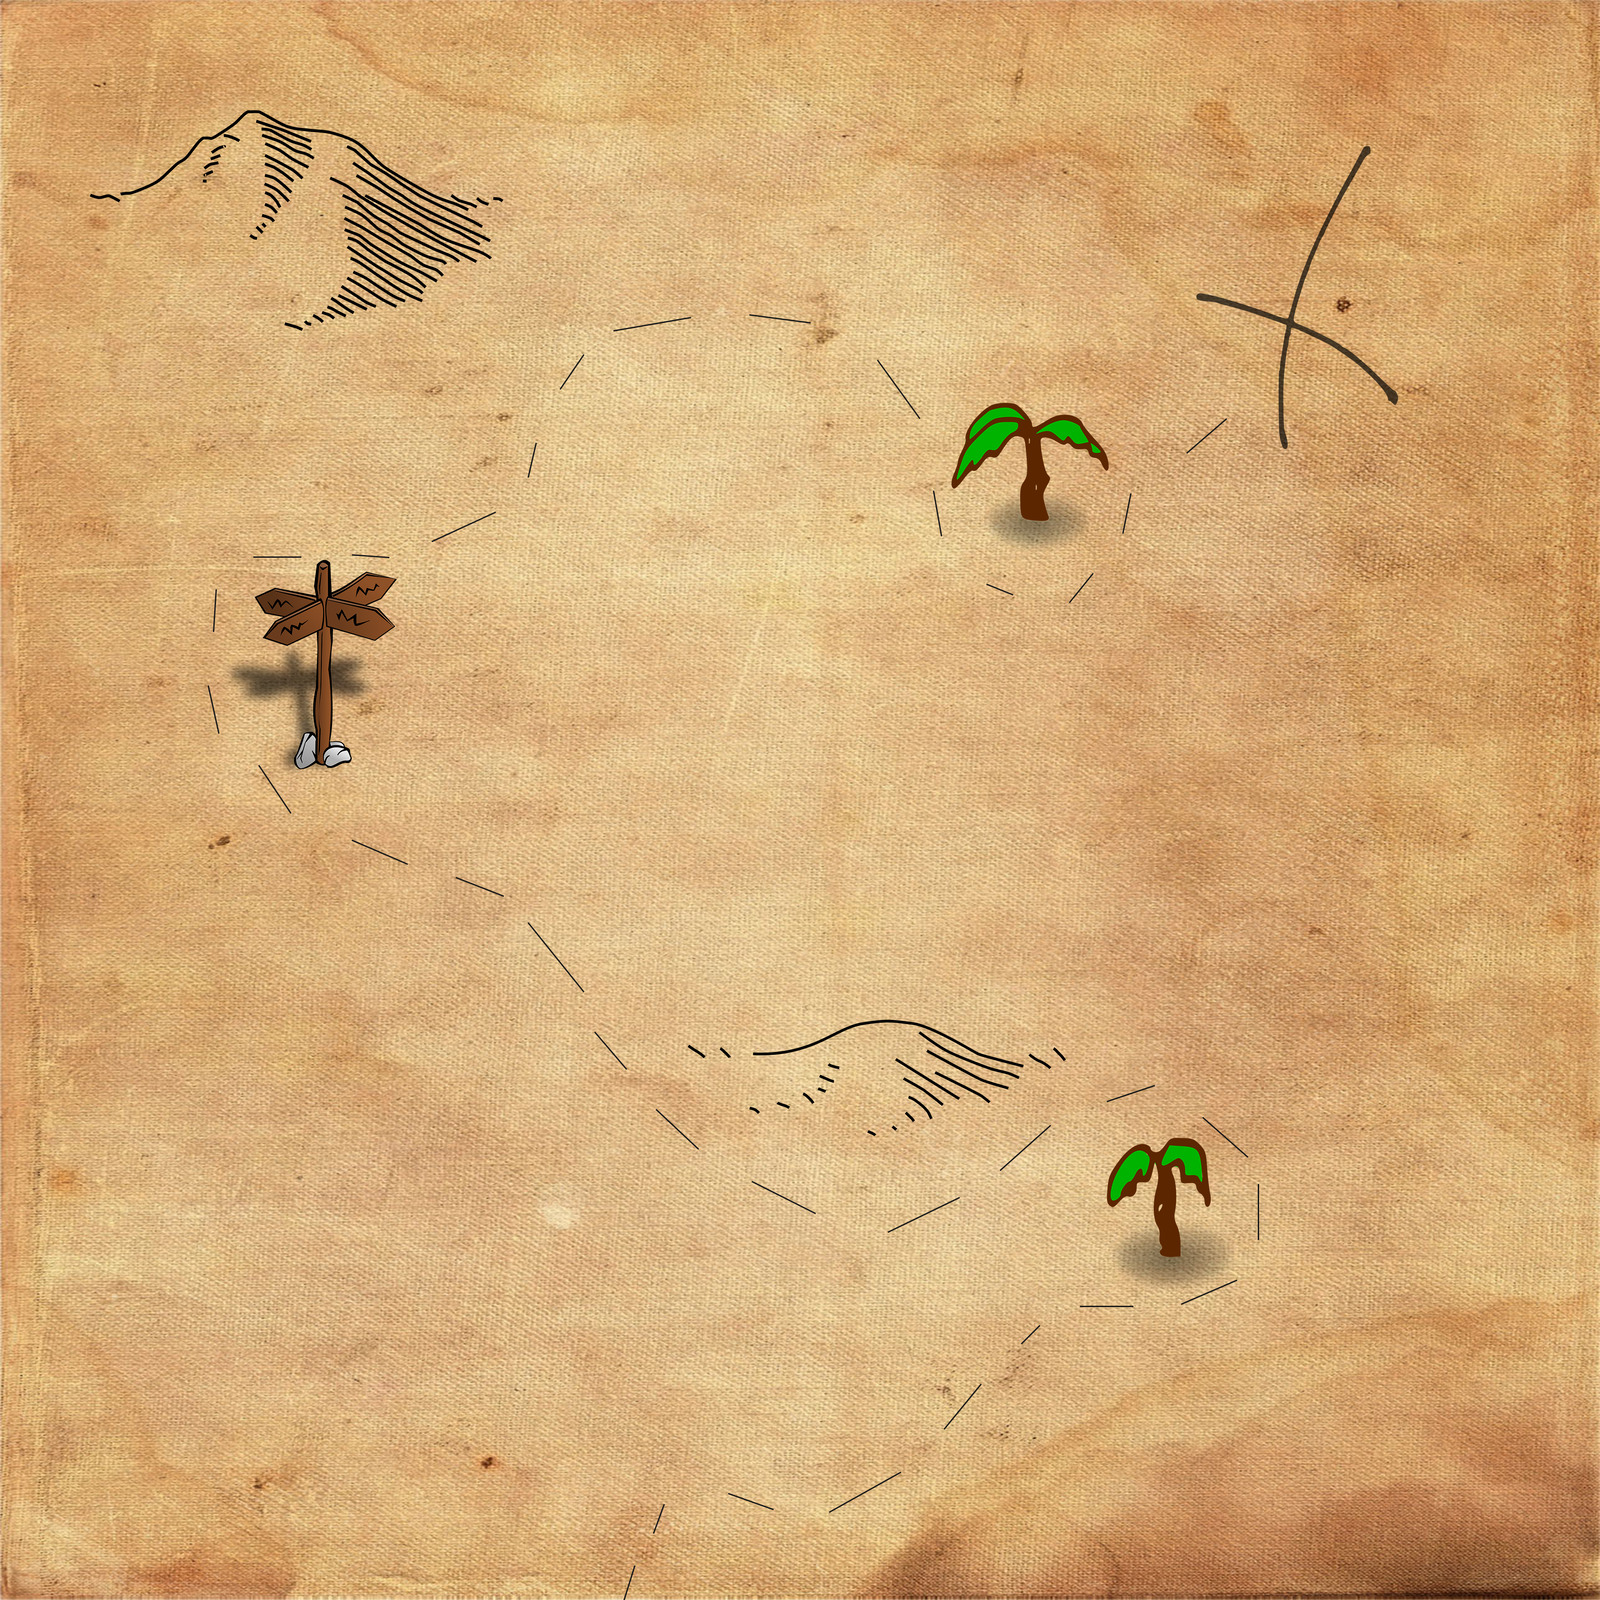 Free Treasure Map Background by nuugraphics on DeviantArt